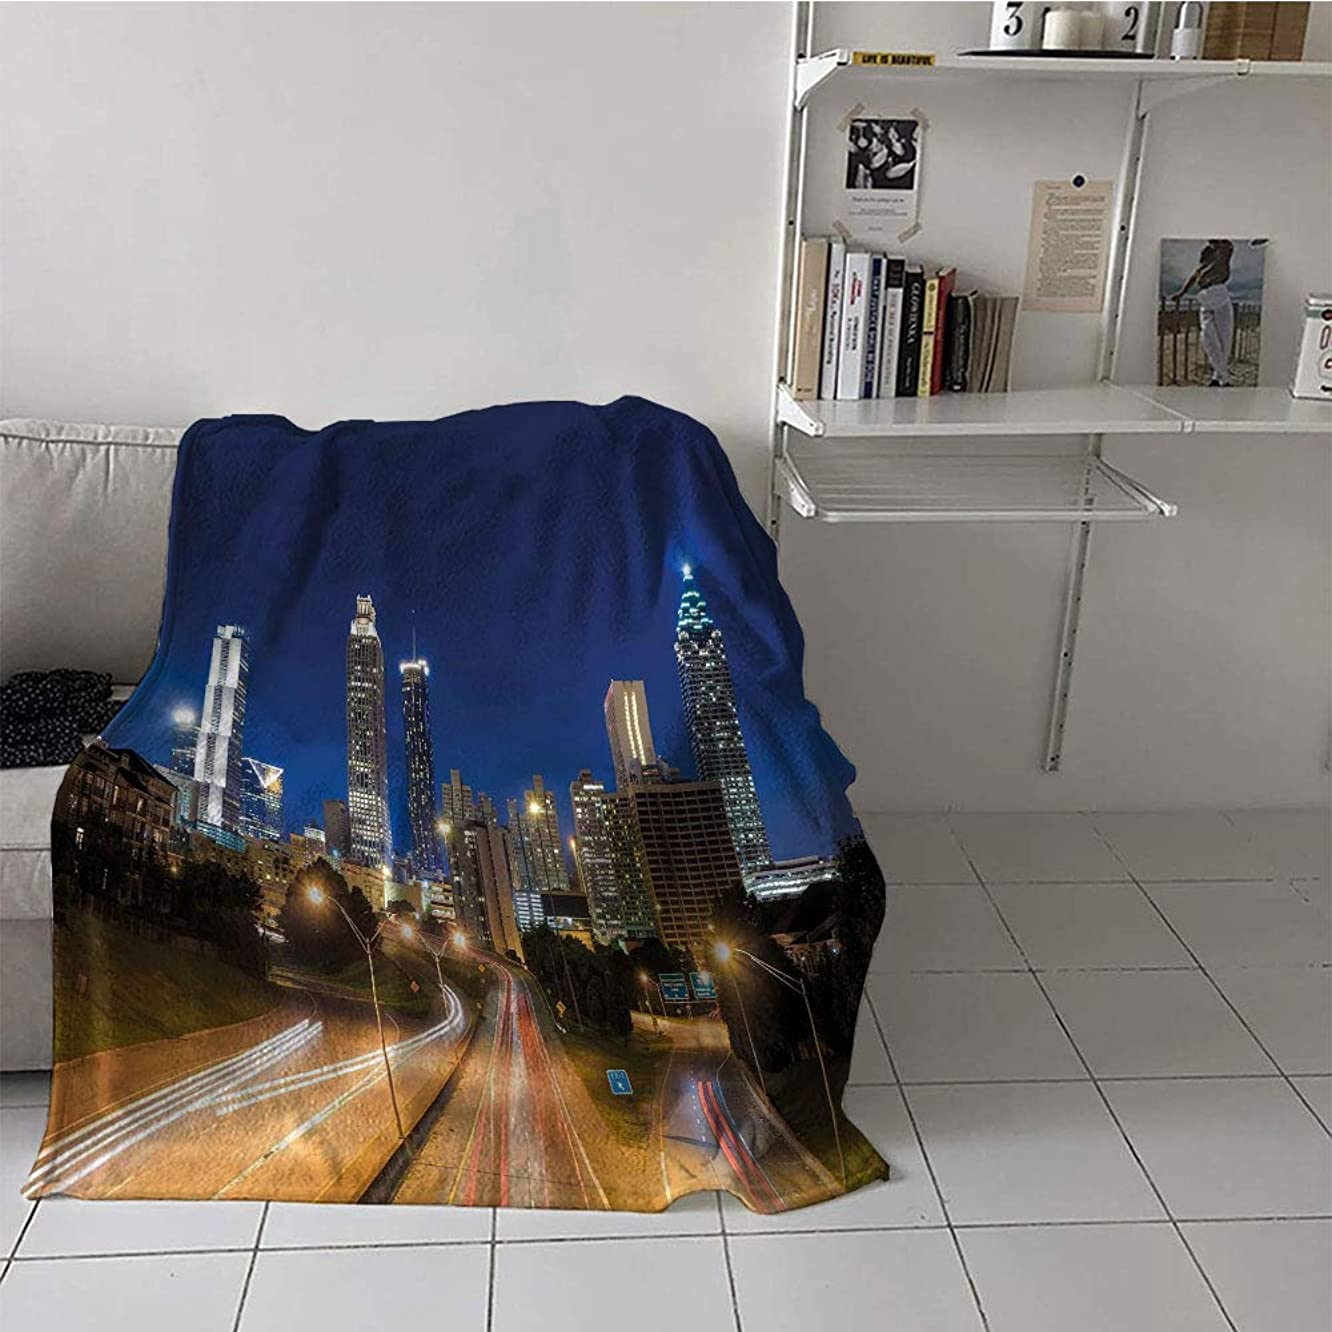 Khaki home Children's Blanket Digital Printing Print Summer Quilt Comforter (60 by 62 Inch,Urban,Image of Atlanta Skyline Twilight with Highway Buildings Skyscrapers Blurred Motion,Multicolor